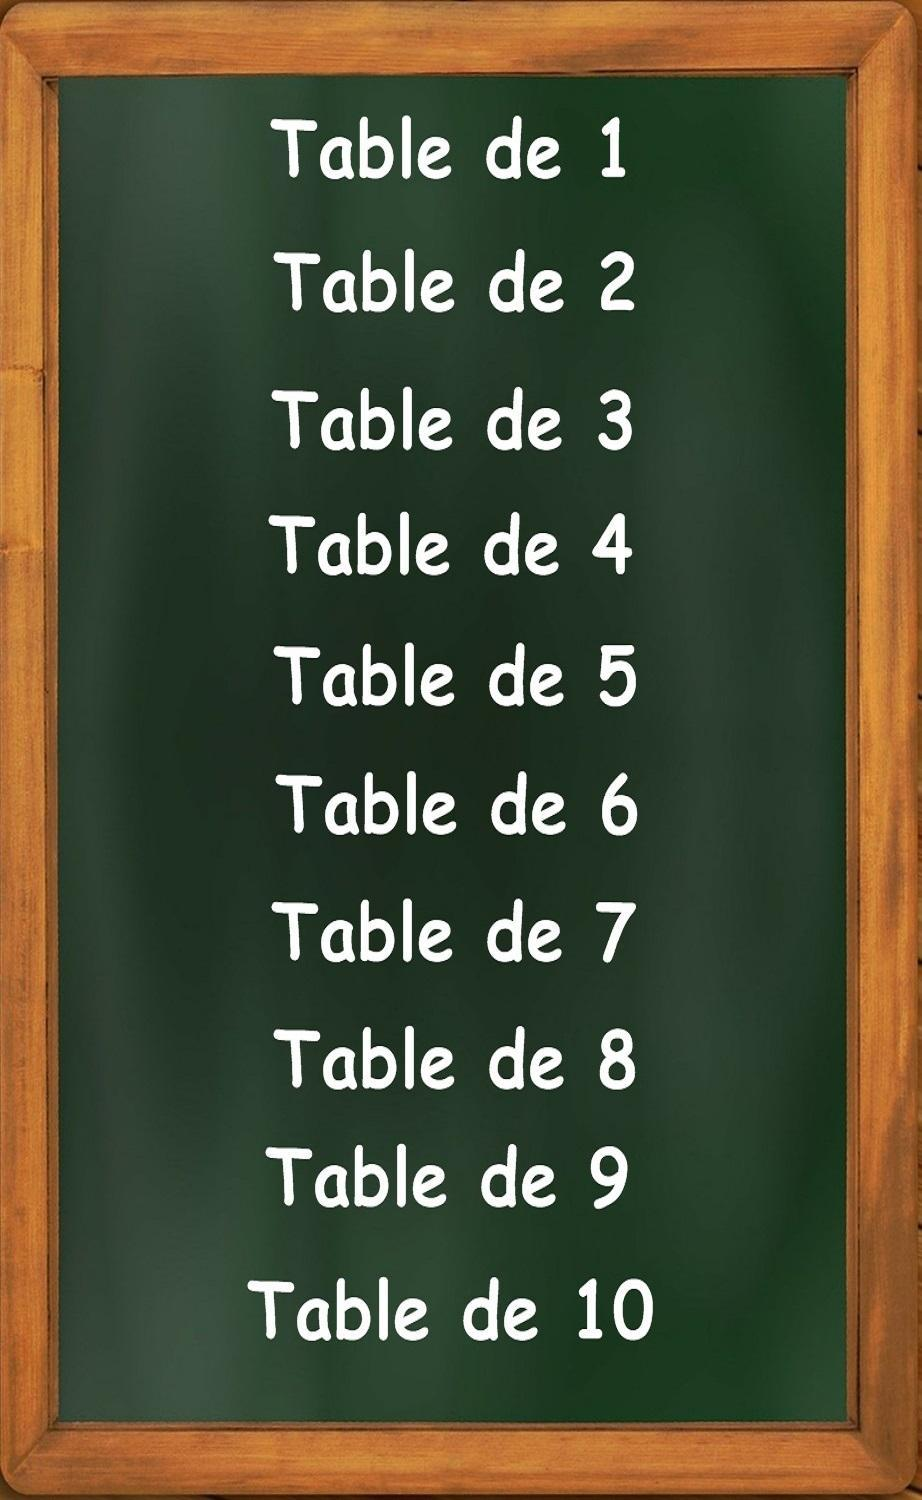 Tables De Multiplication For Android Apk Download